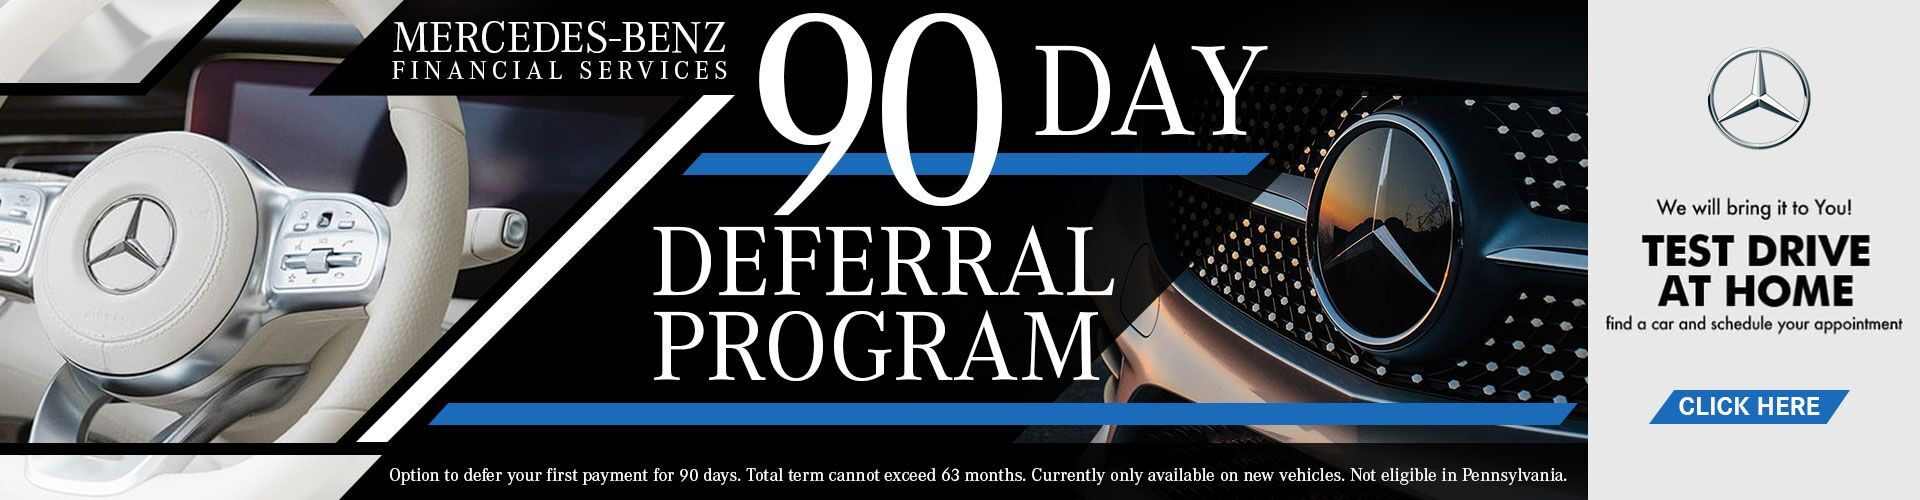 90 Day Deferral Main